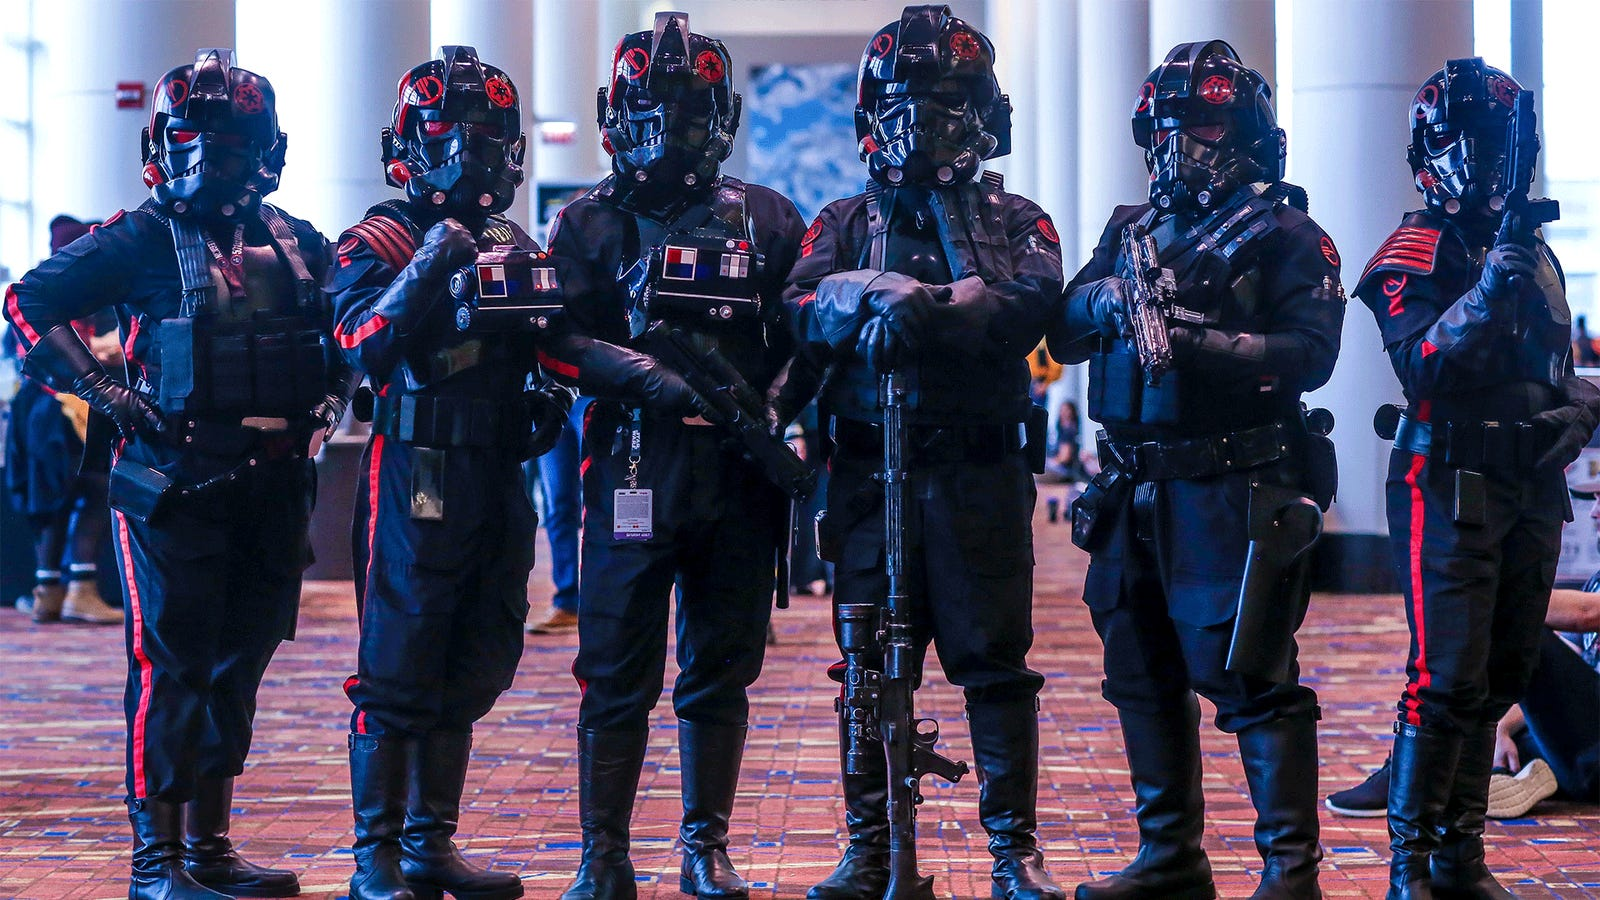 Some Of The Best Star Wars Cosplay For 2019